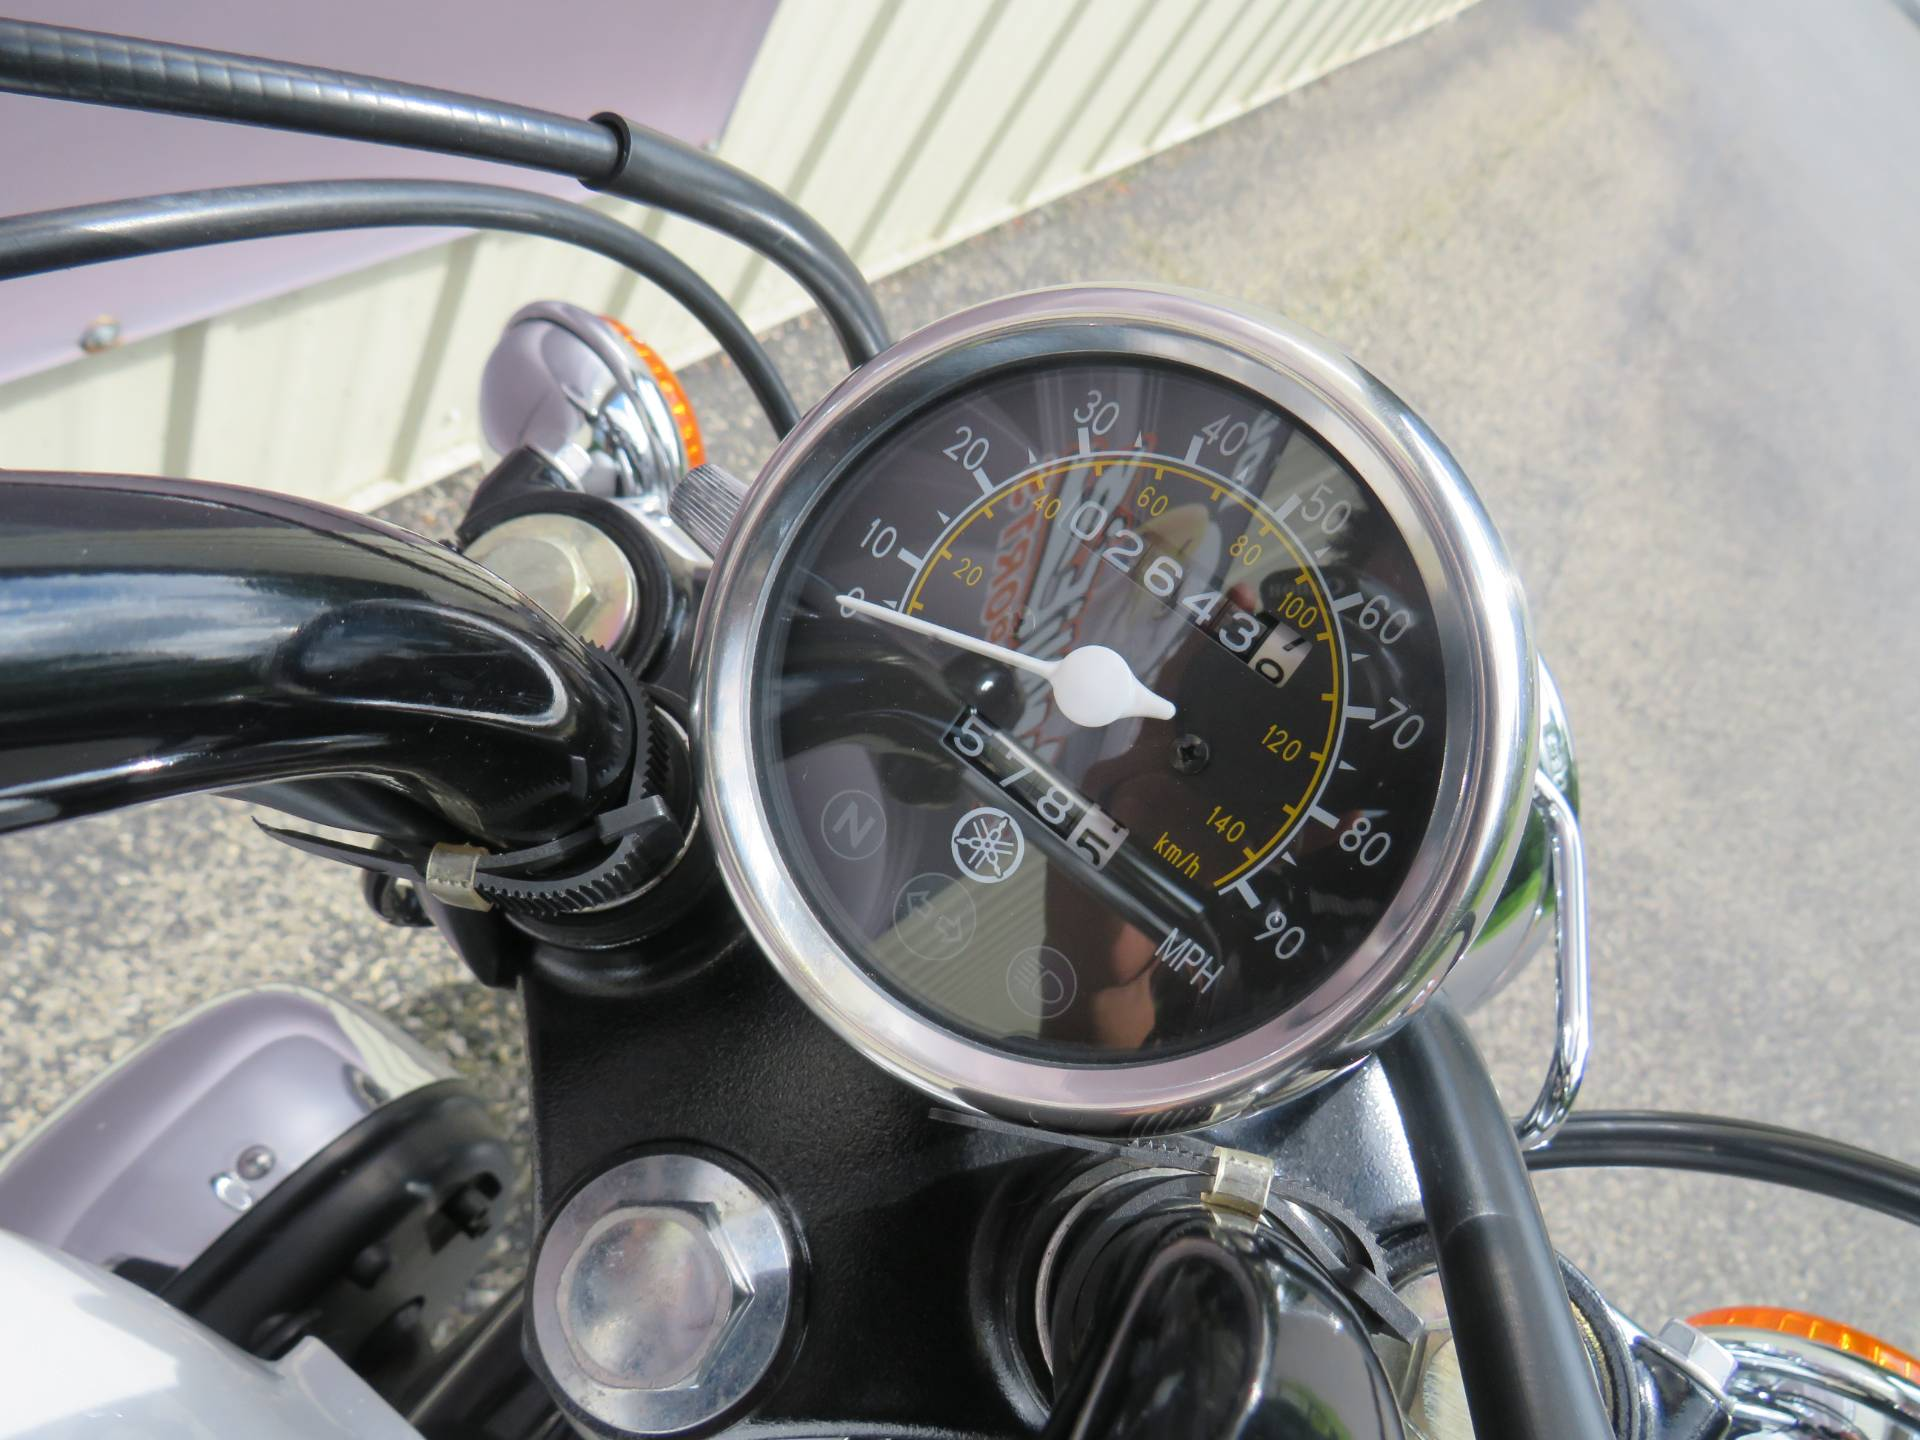 2014 Yamaha V Star 250 in Guilderland, New York - Photo 2